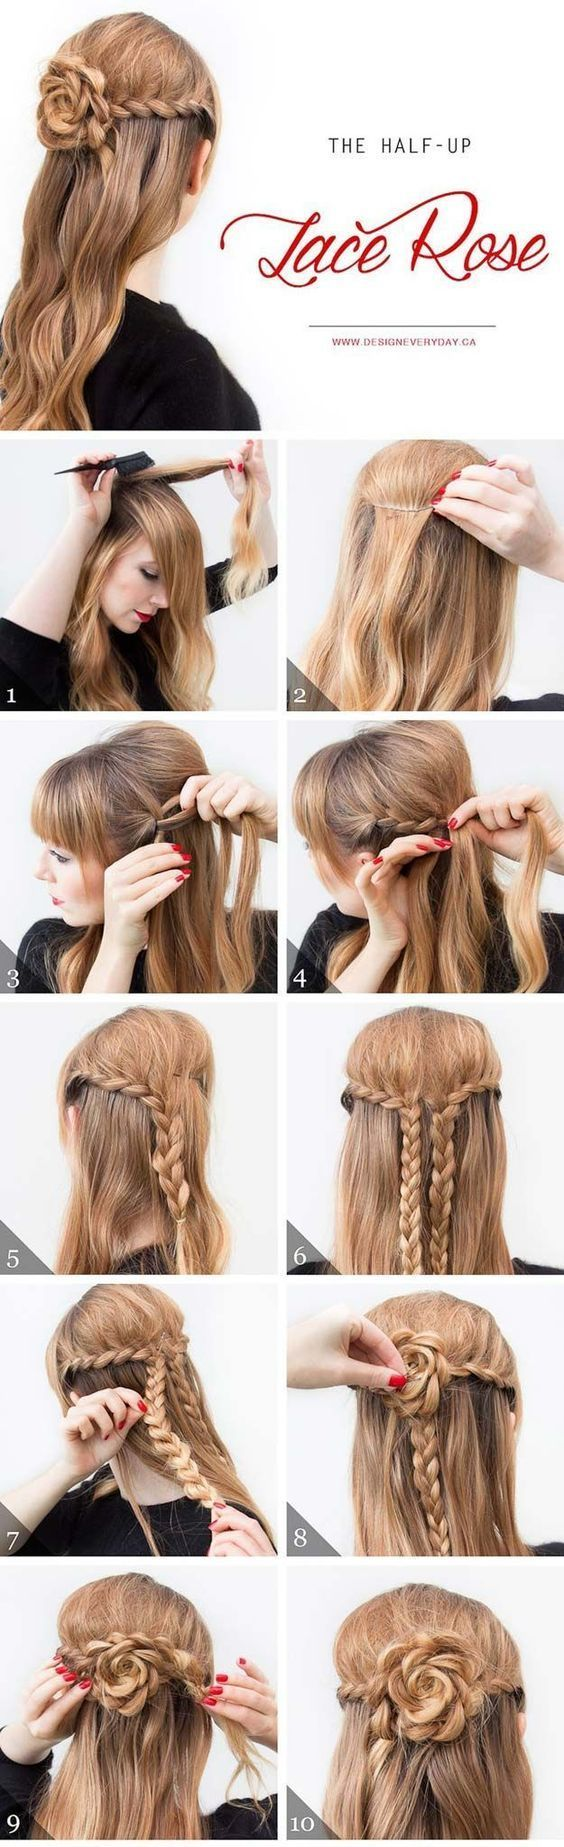 Tremendous 1000 Ideas About Quick School Hairstyles On Pinterest Easy Short Hairstyles For Black Women Fulllsitofus